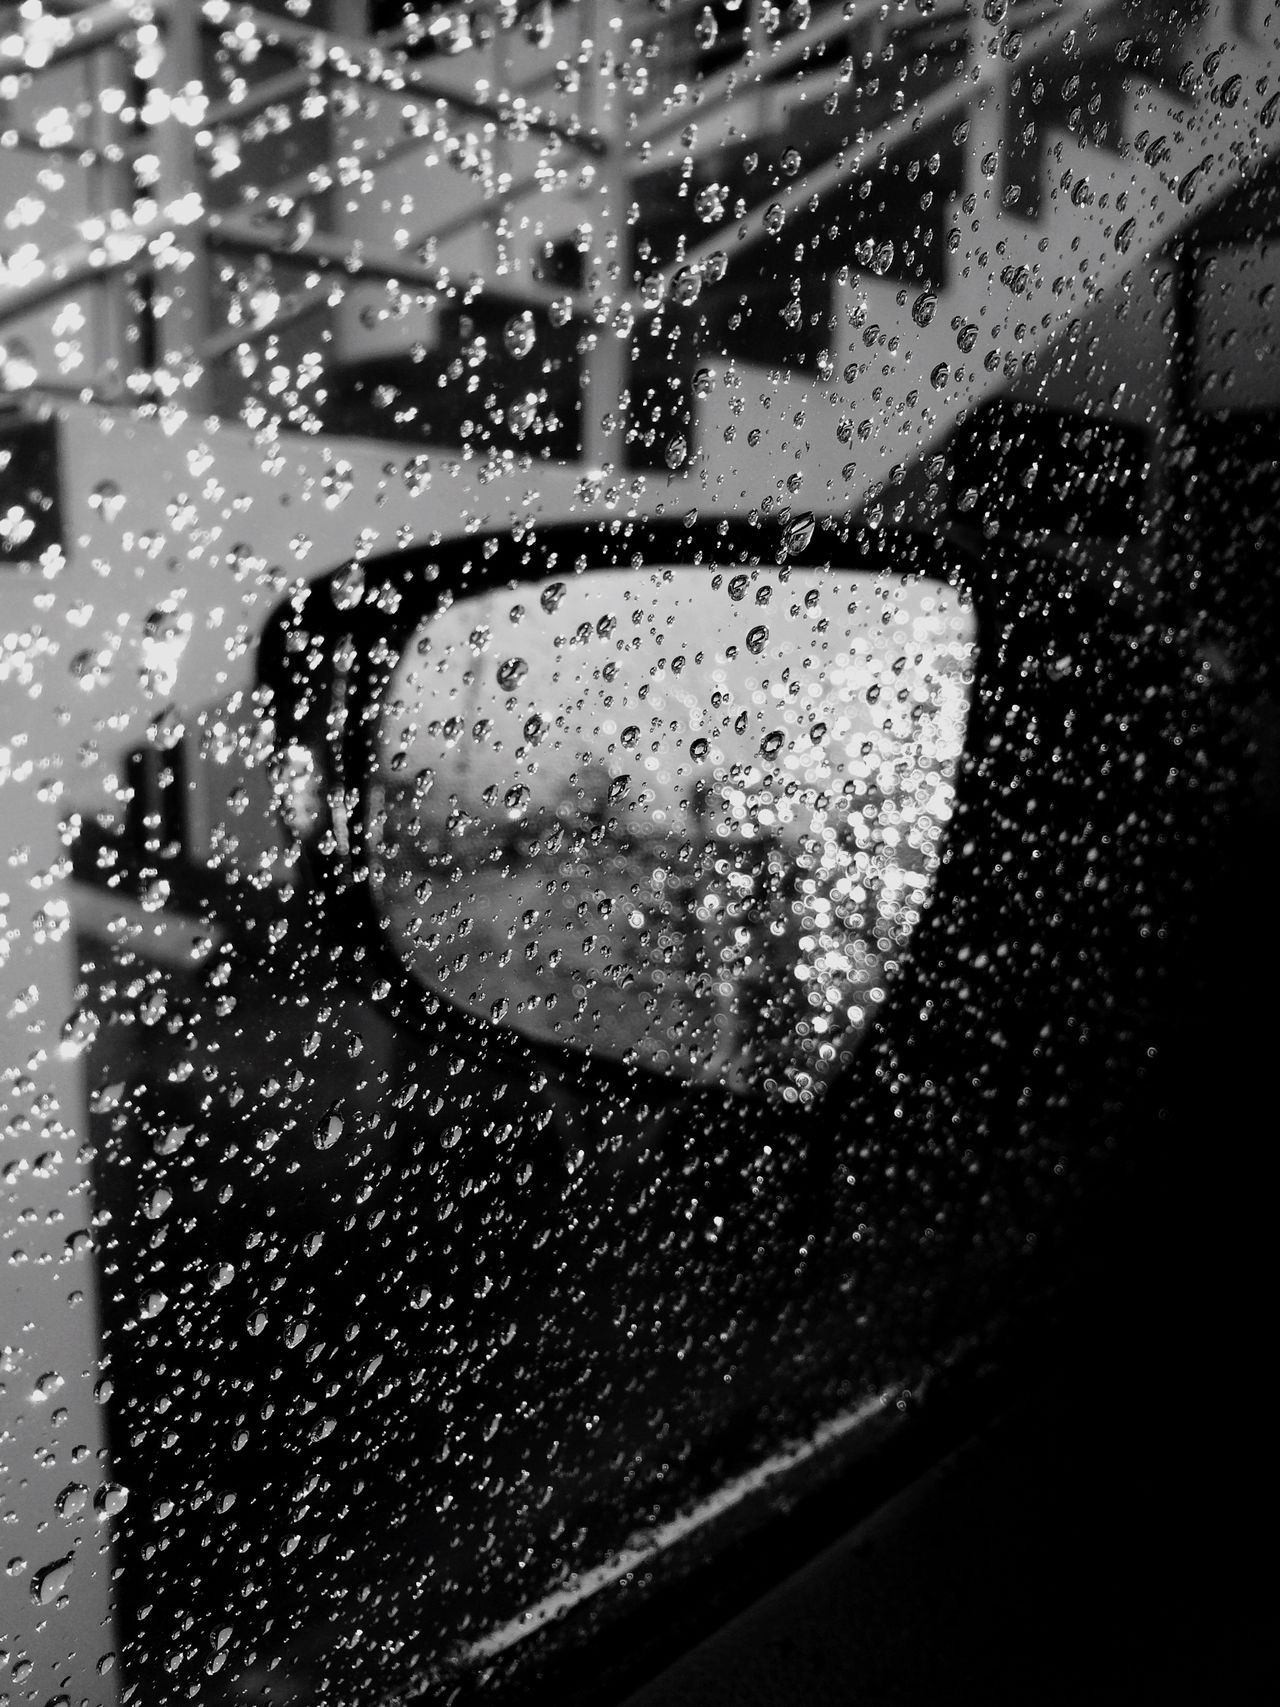 Rain Window Vehicle Interior Car Interior Looking Through Window RainDrop Rainy Season Costa Rica Pura Vida ✌ Live For The Story The Street Photographer - 2017 EyeEm Awards The Great Outdoors - 2017 EyeEm Awards EyeEmNewHere